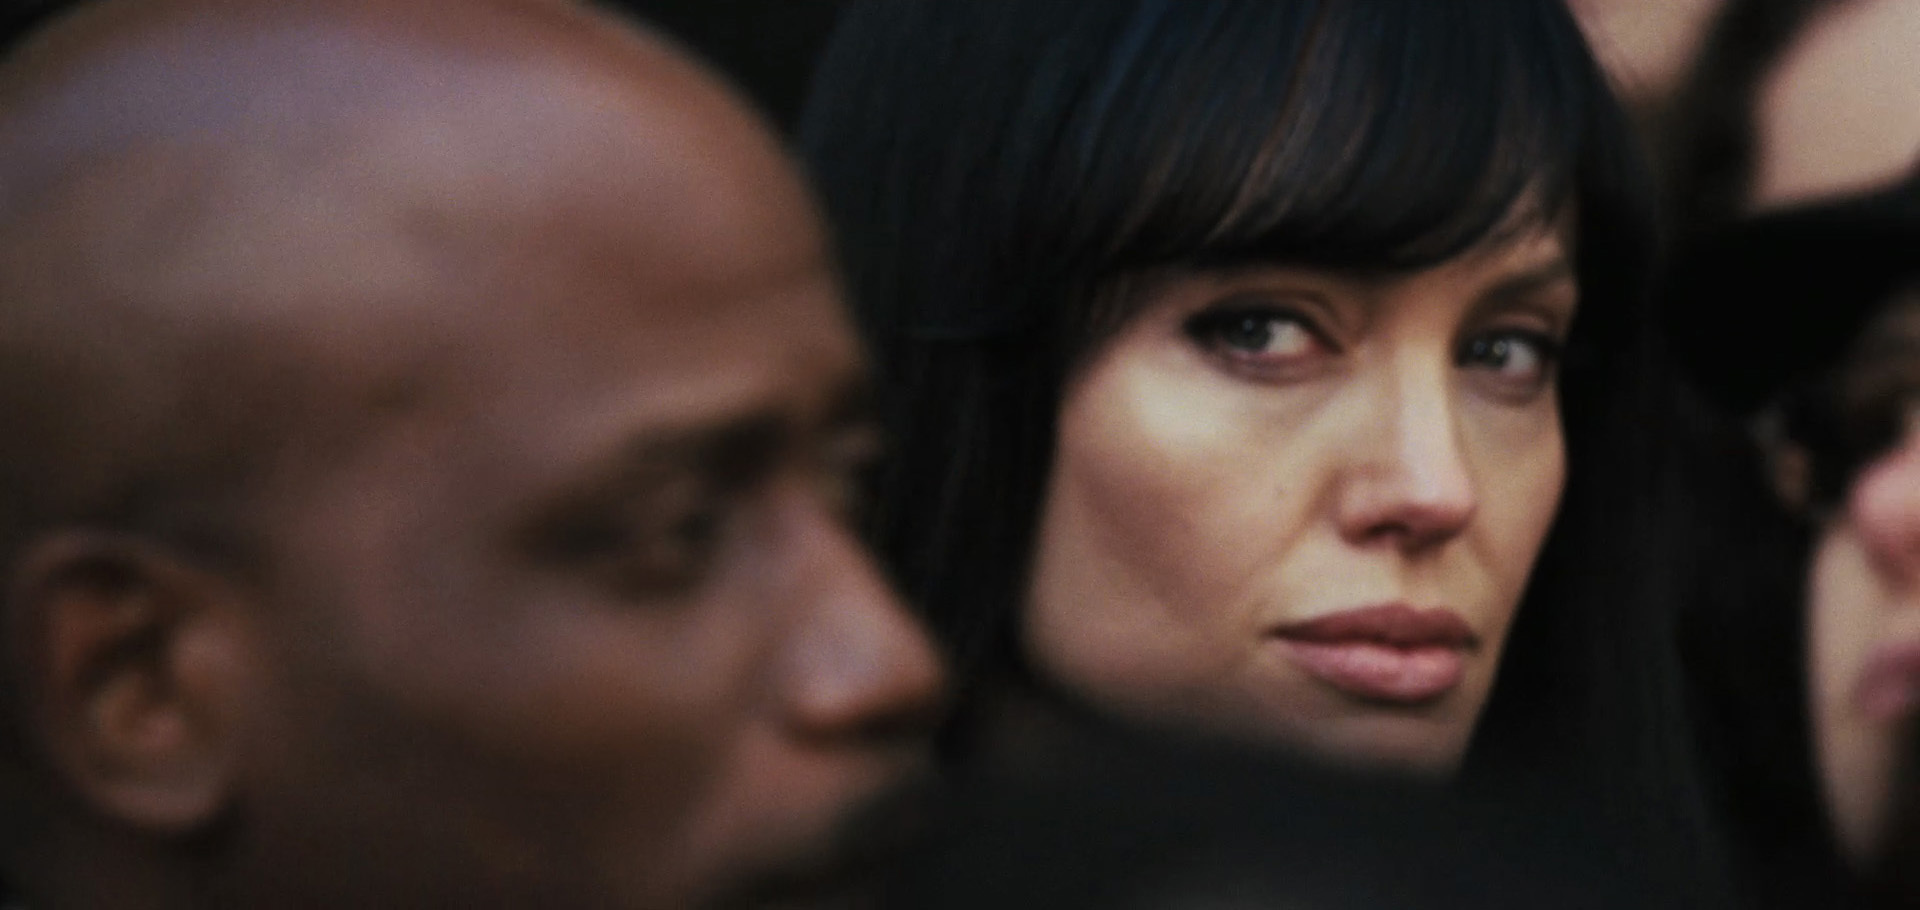 http://images2.fanpop.com/image/photos/9000000/Angelina-Jolie-Salt-trailer-angelina-jolie-9086640-1920-910.jpg